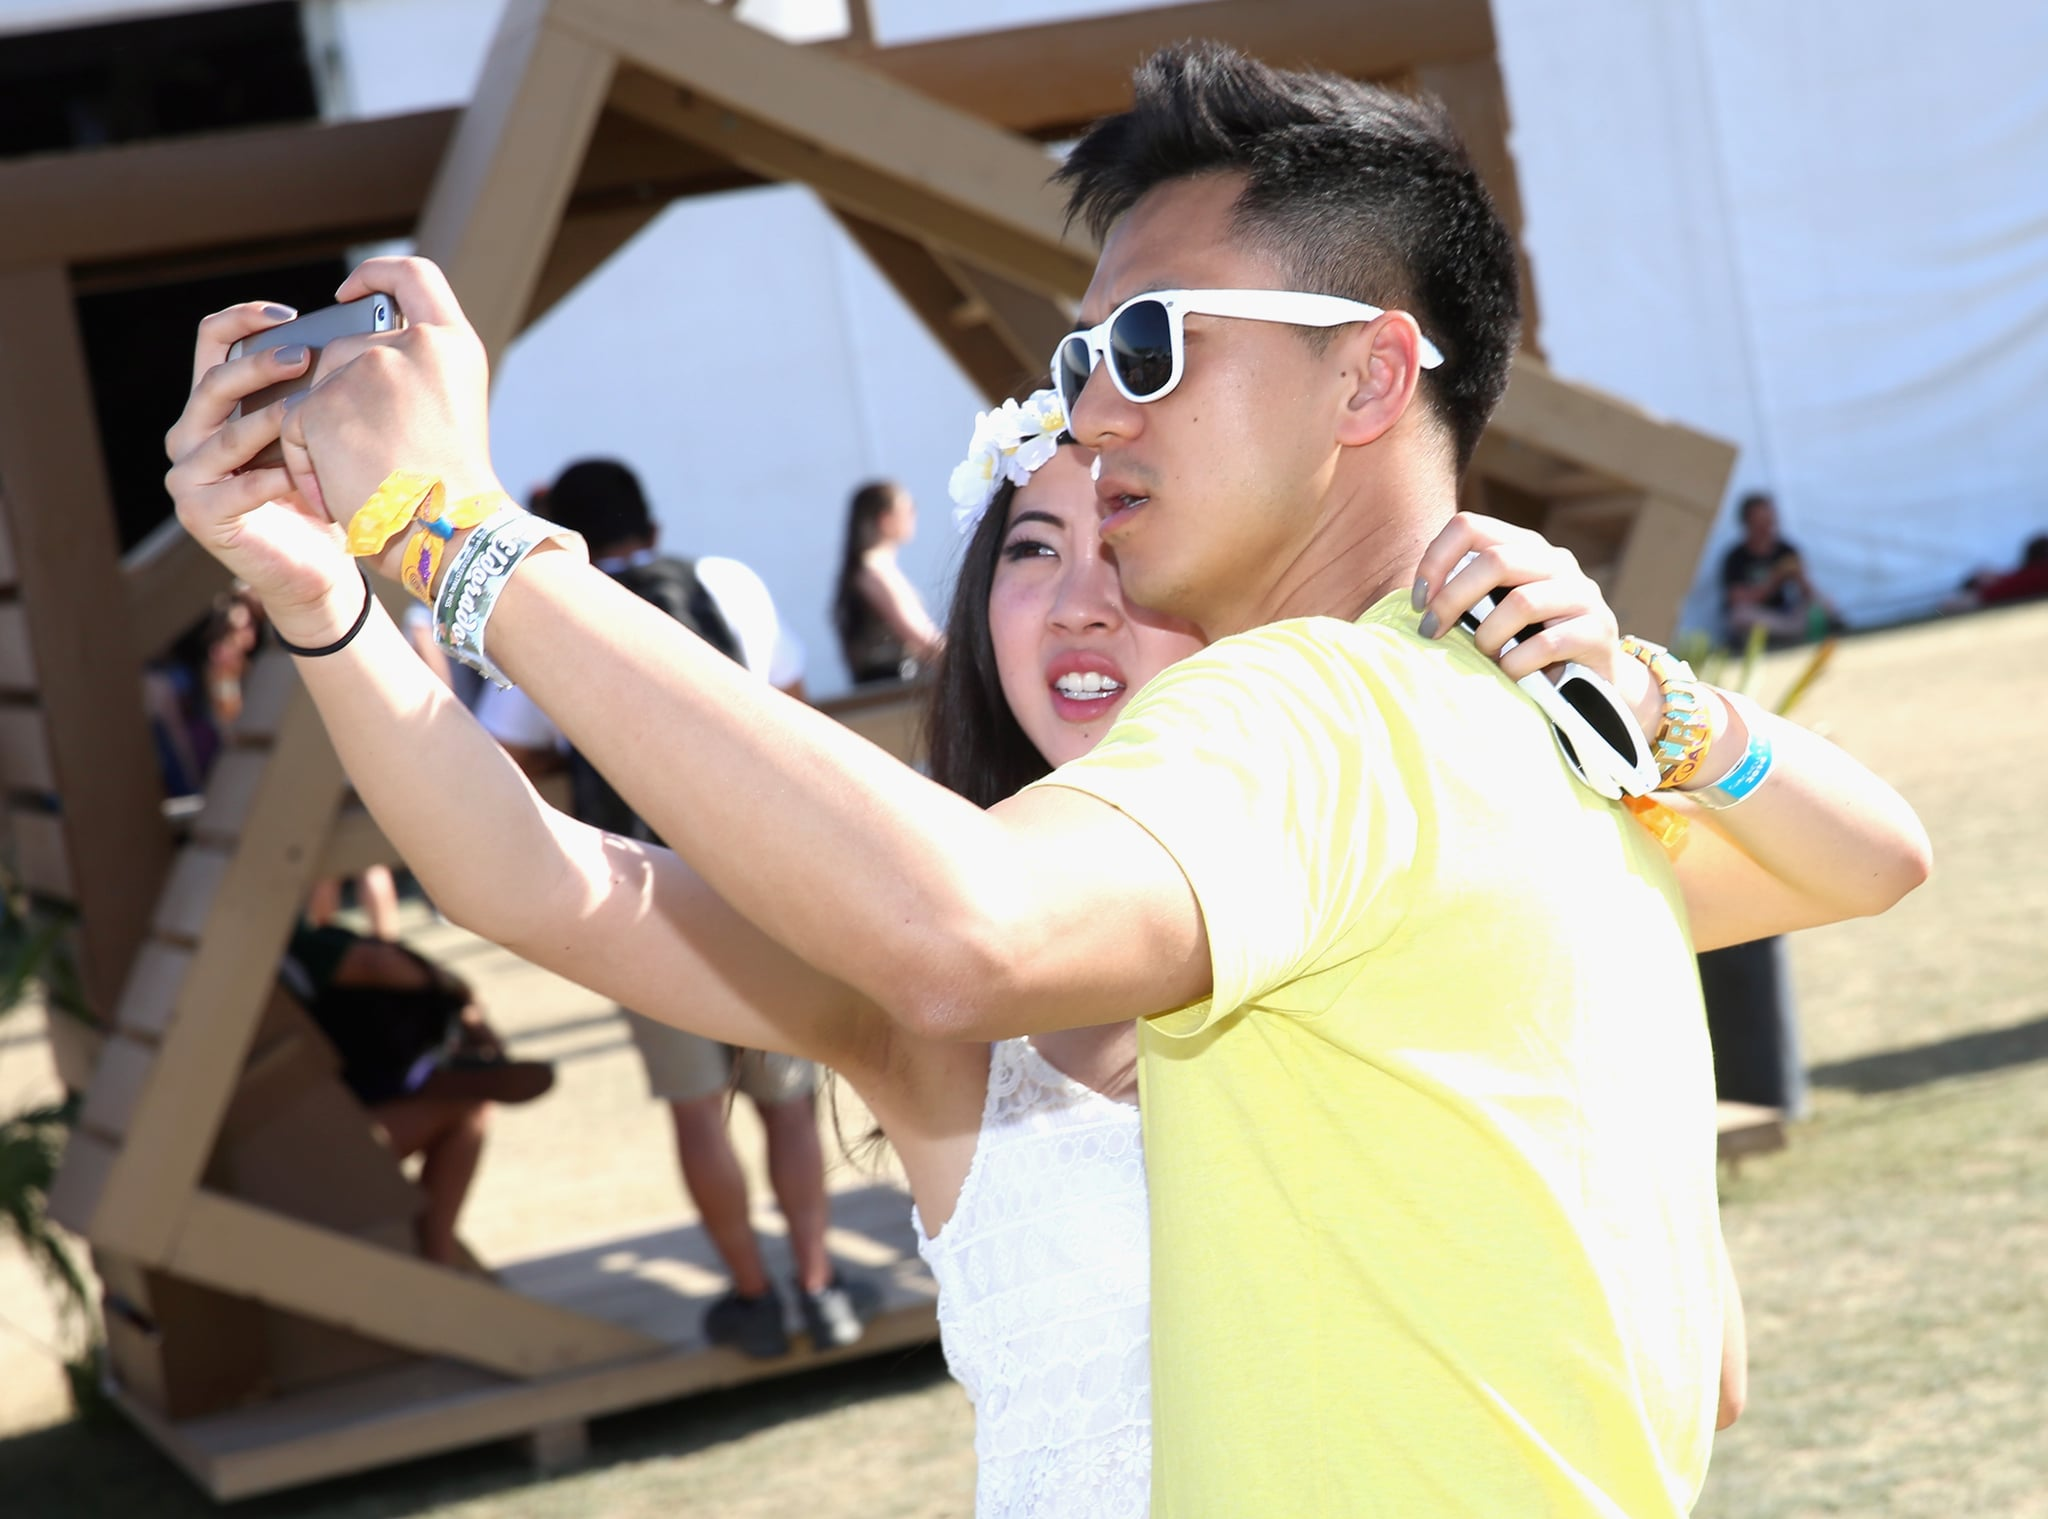 A couple took a selfie at Indio's Coachella.